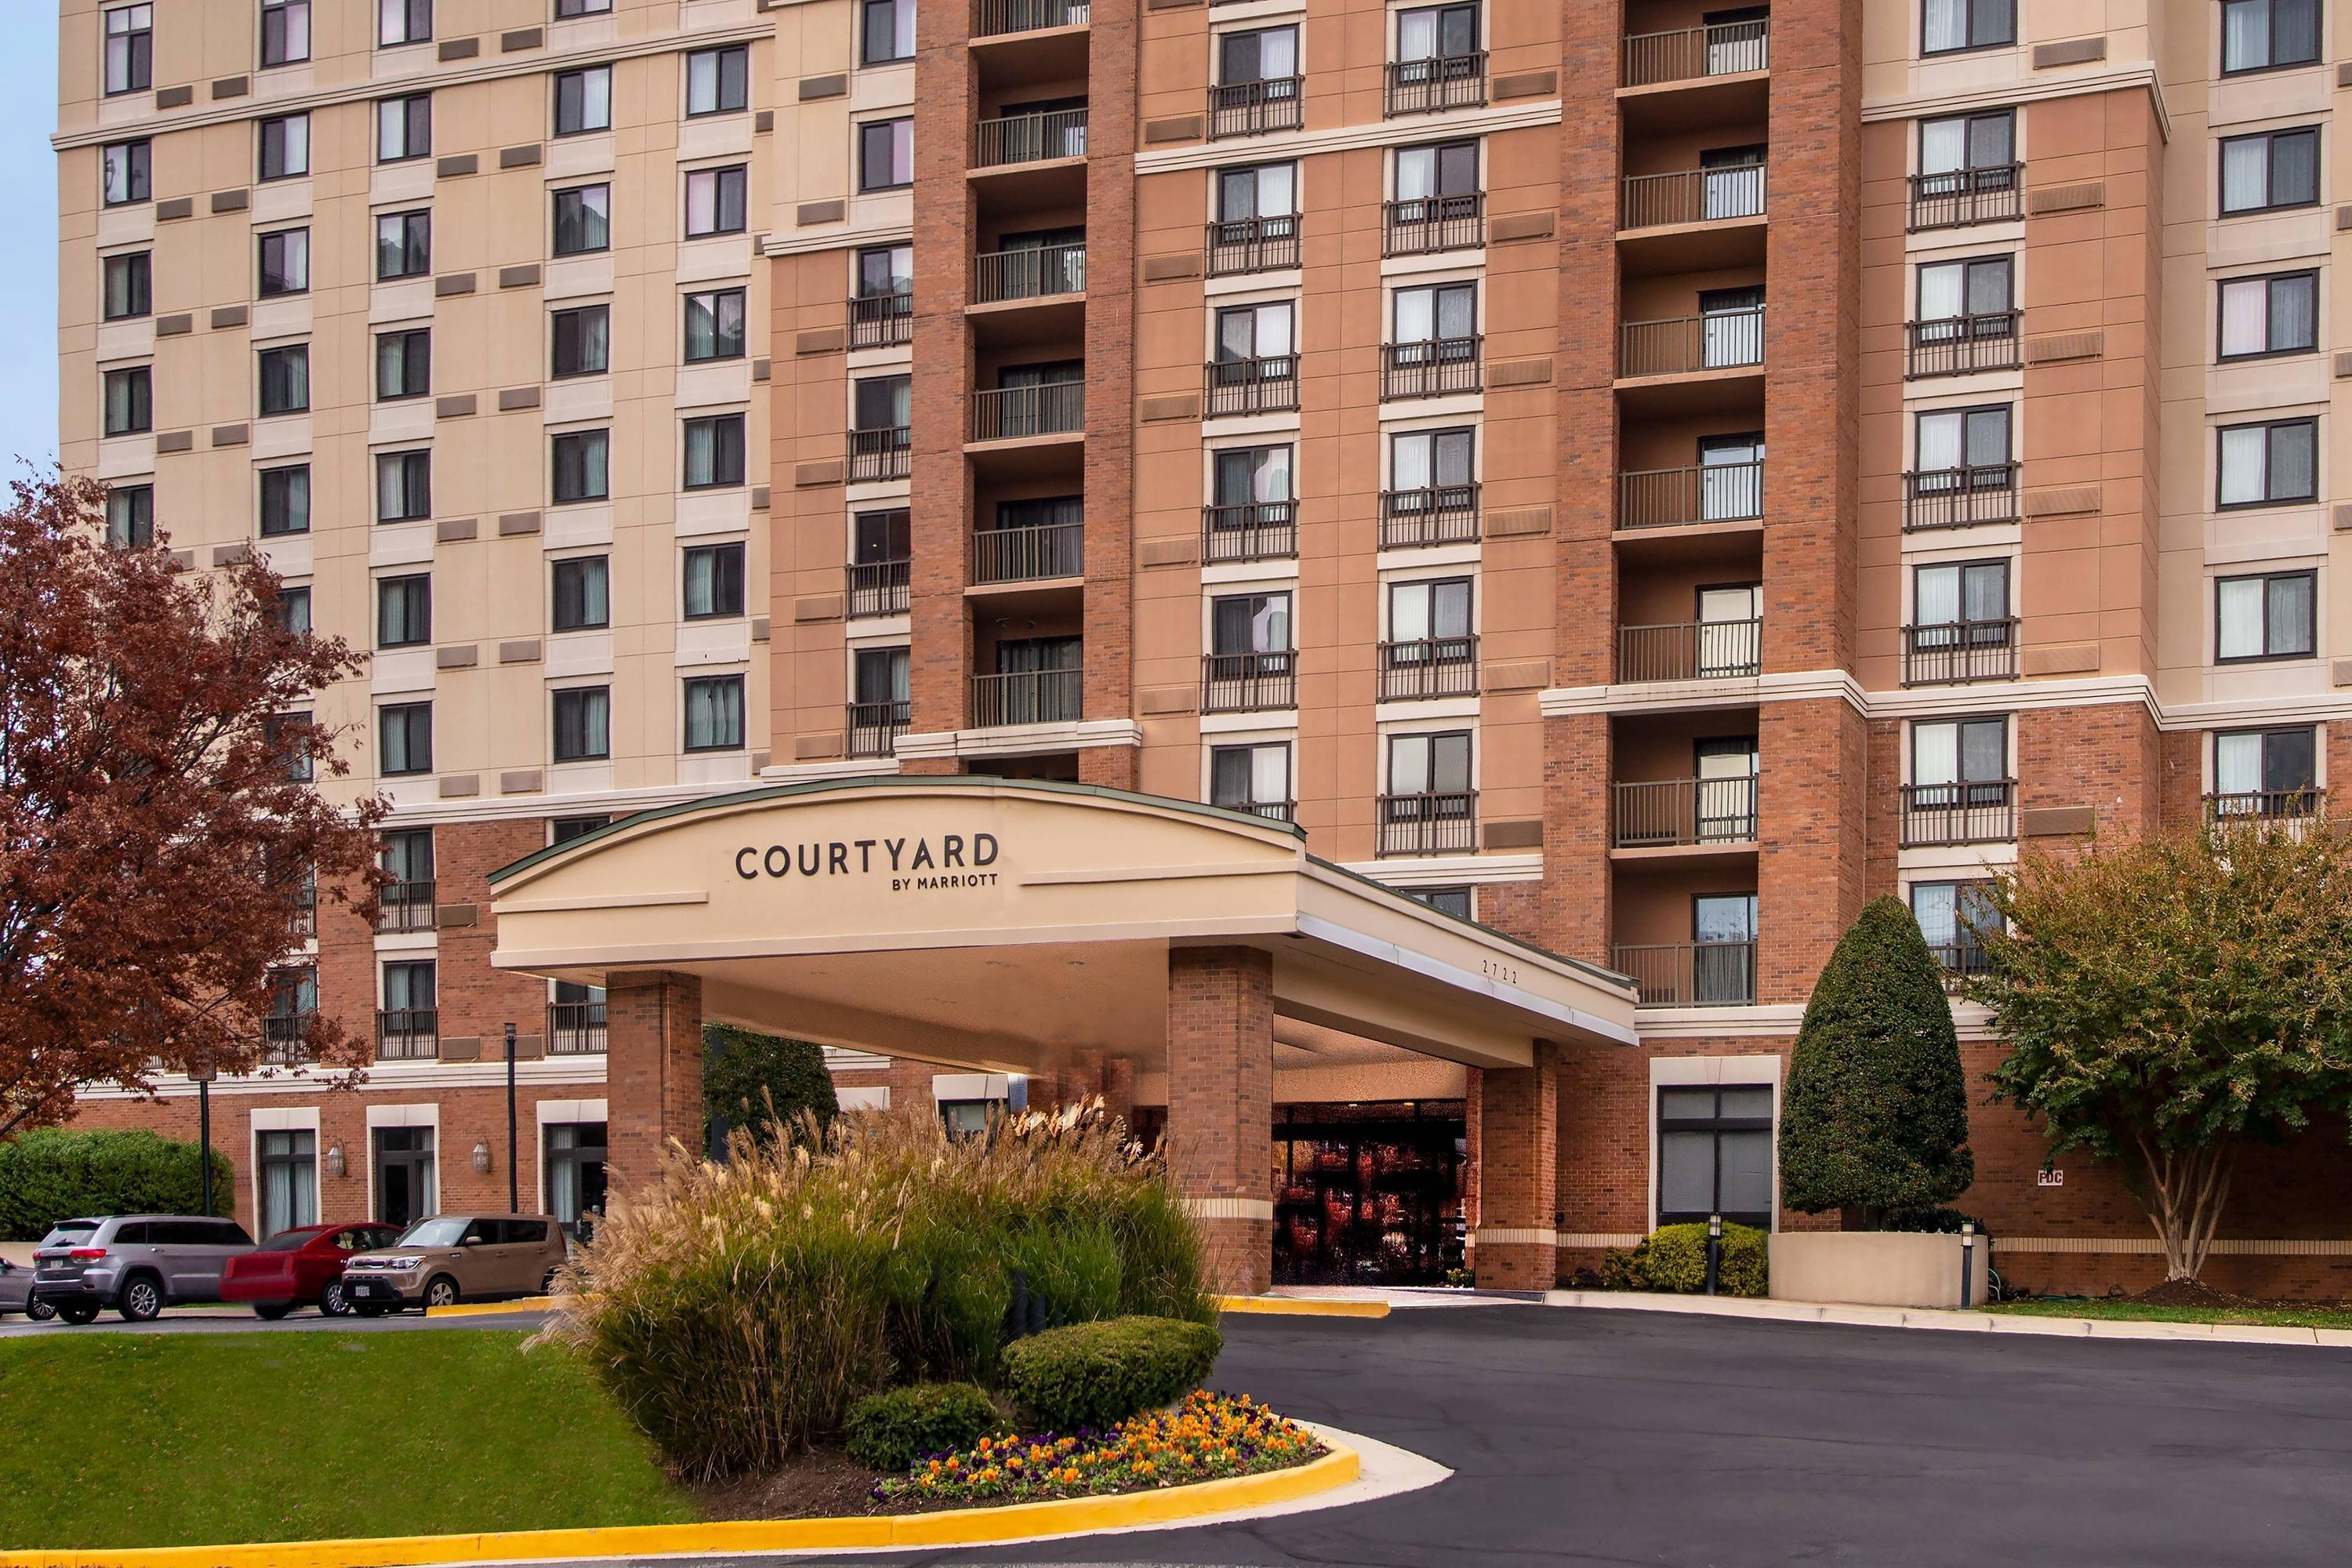 Courtyard by Marriott Dunn Loring Fairfax